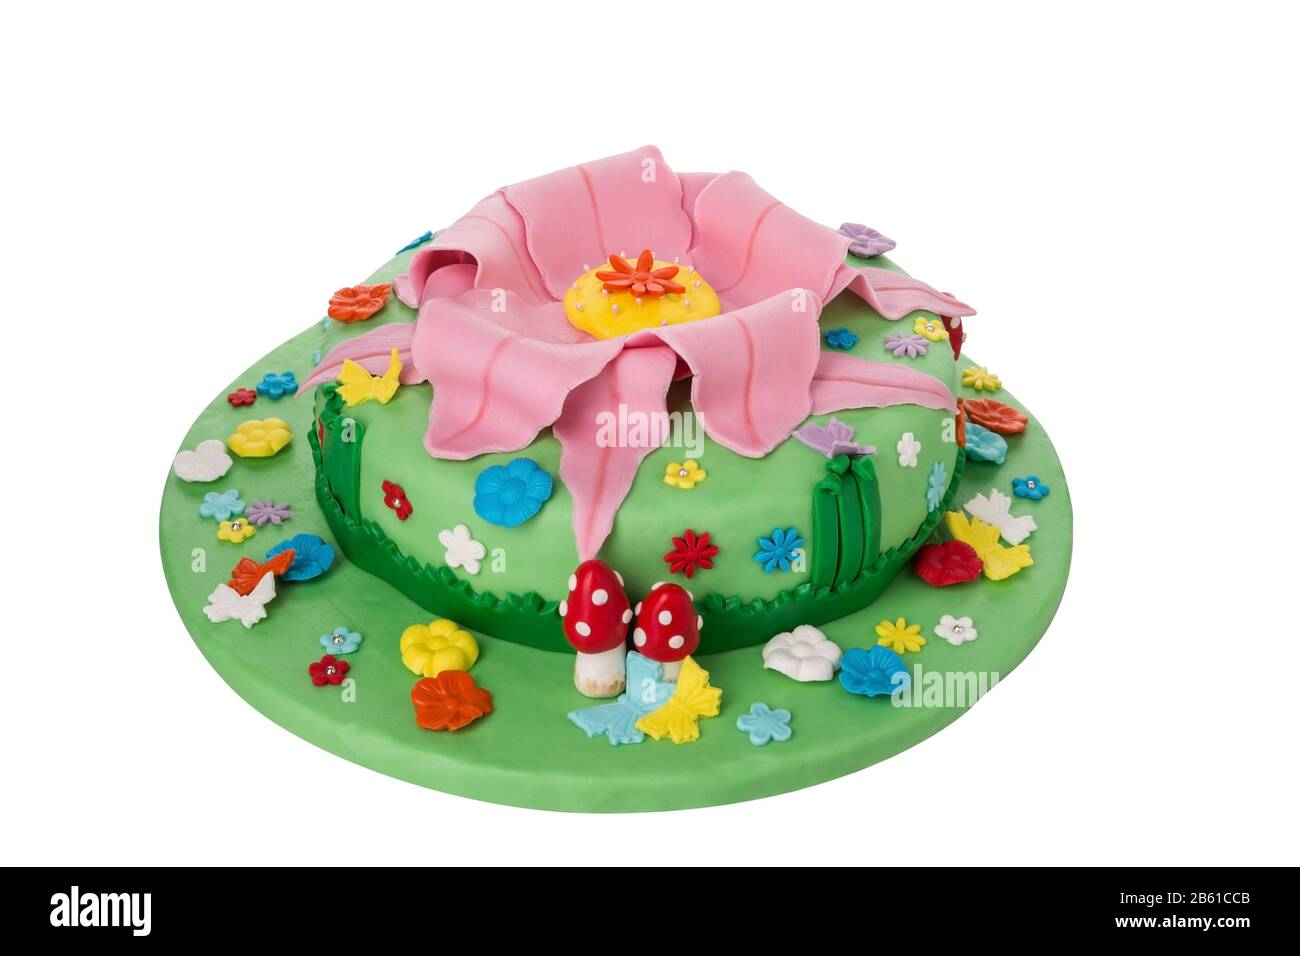 Superb Delicious And Creative Birthday Cake For Children Theme Nature Funny Birthday Cards Online Hendilapandamsfinfo